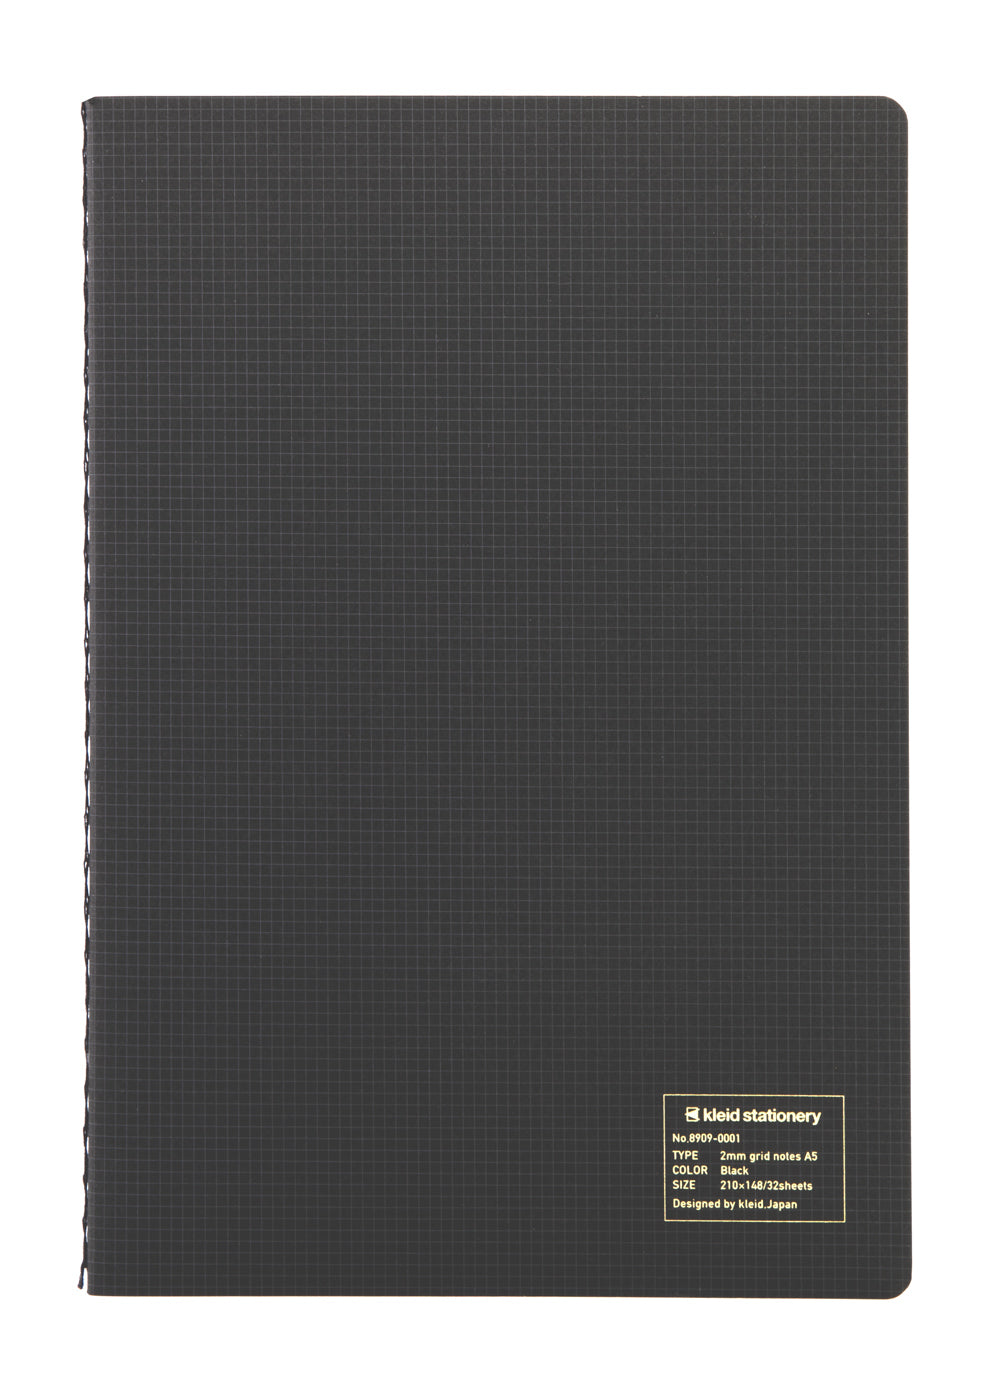 Kleid 2mm Grid Notes A5- Black